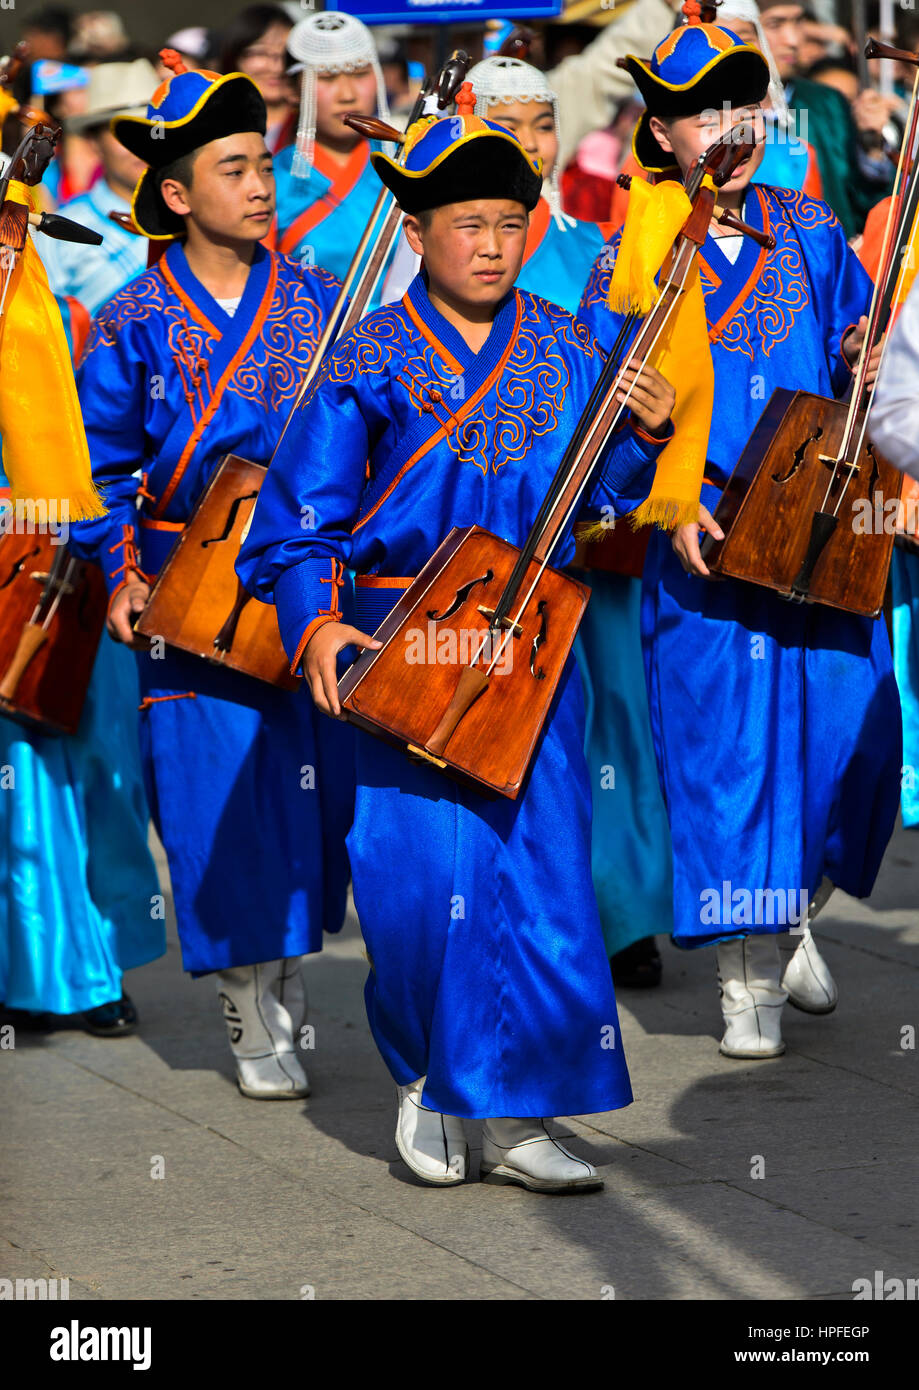 Youth in traditional Deel clothes and horse-head fiddle, Morin chuur, Festival of the Mongolian national costume, - Stock Image